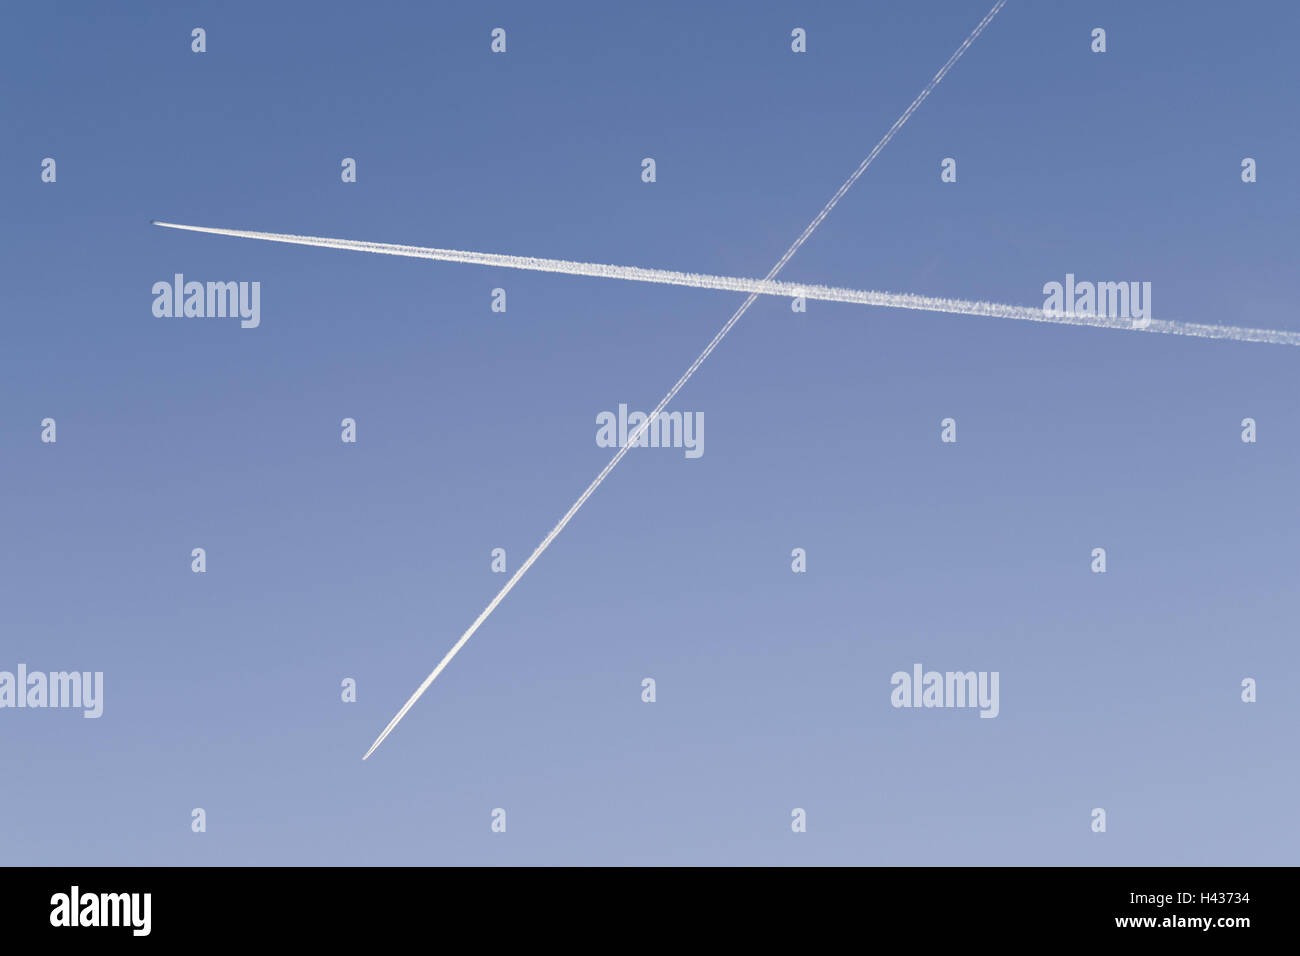 Heavens, blue, condensation trails, from below, air traffic, flight route, airline, cruise, traffic, aviation, cross, Stock Photo